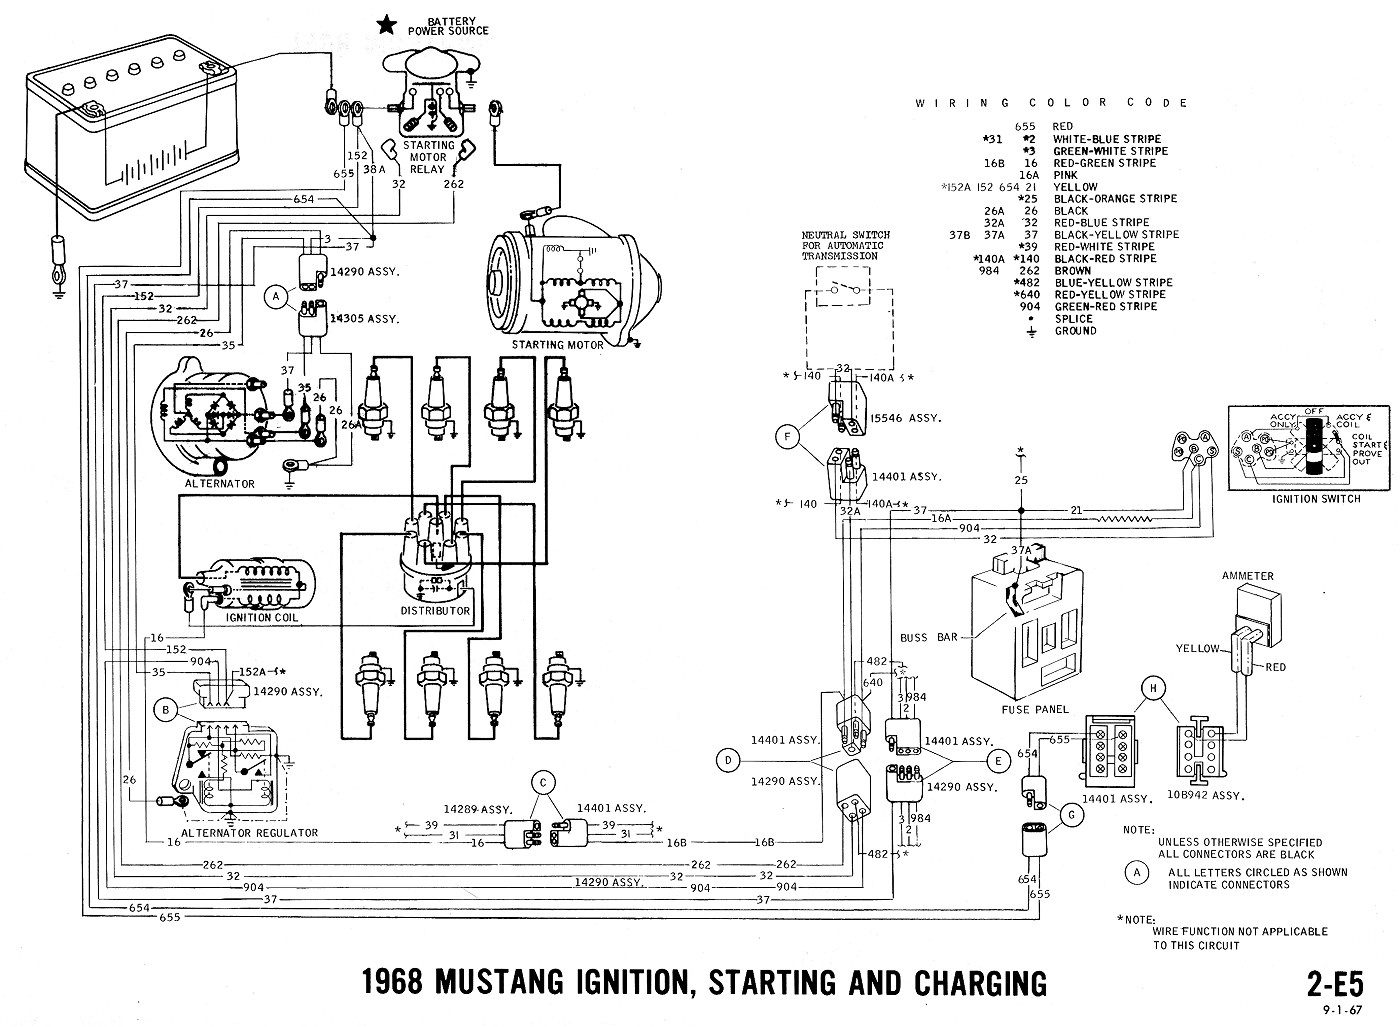 E5 1968 mustang wiring diagrams evolving software 1965 mustang wiring diagram pdf at edmiracle.co